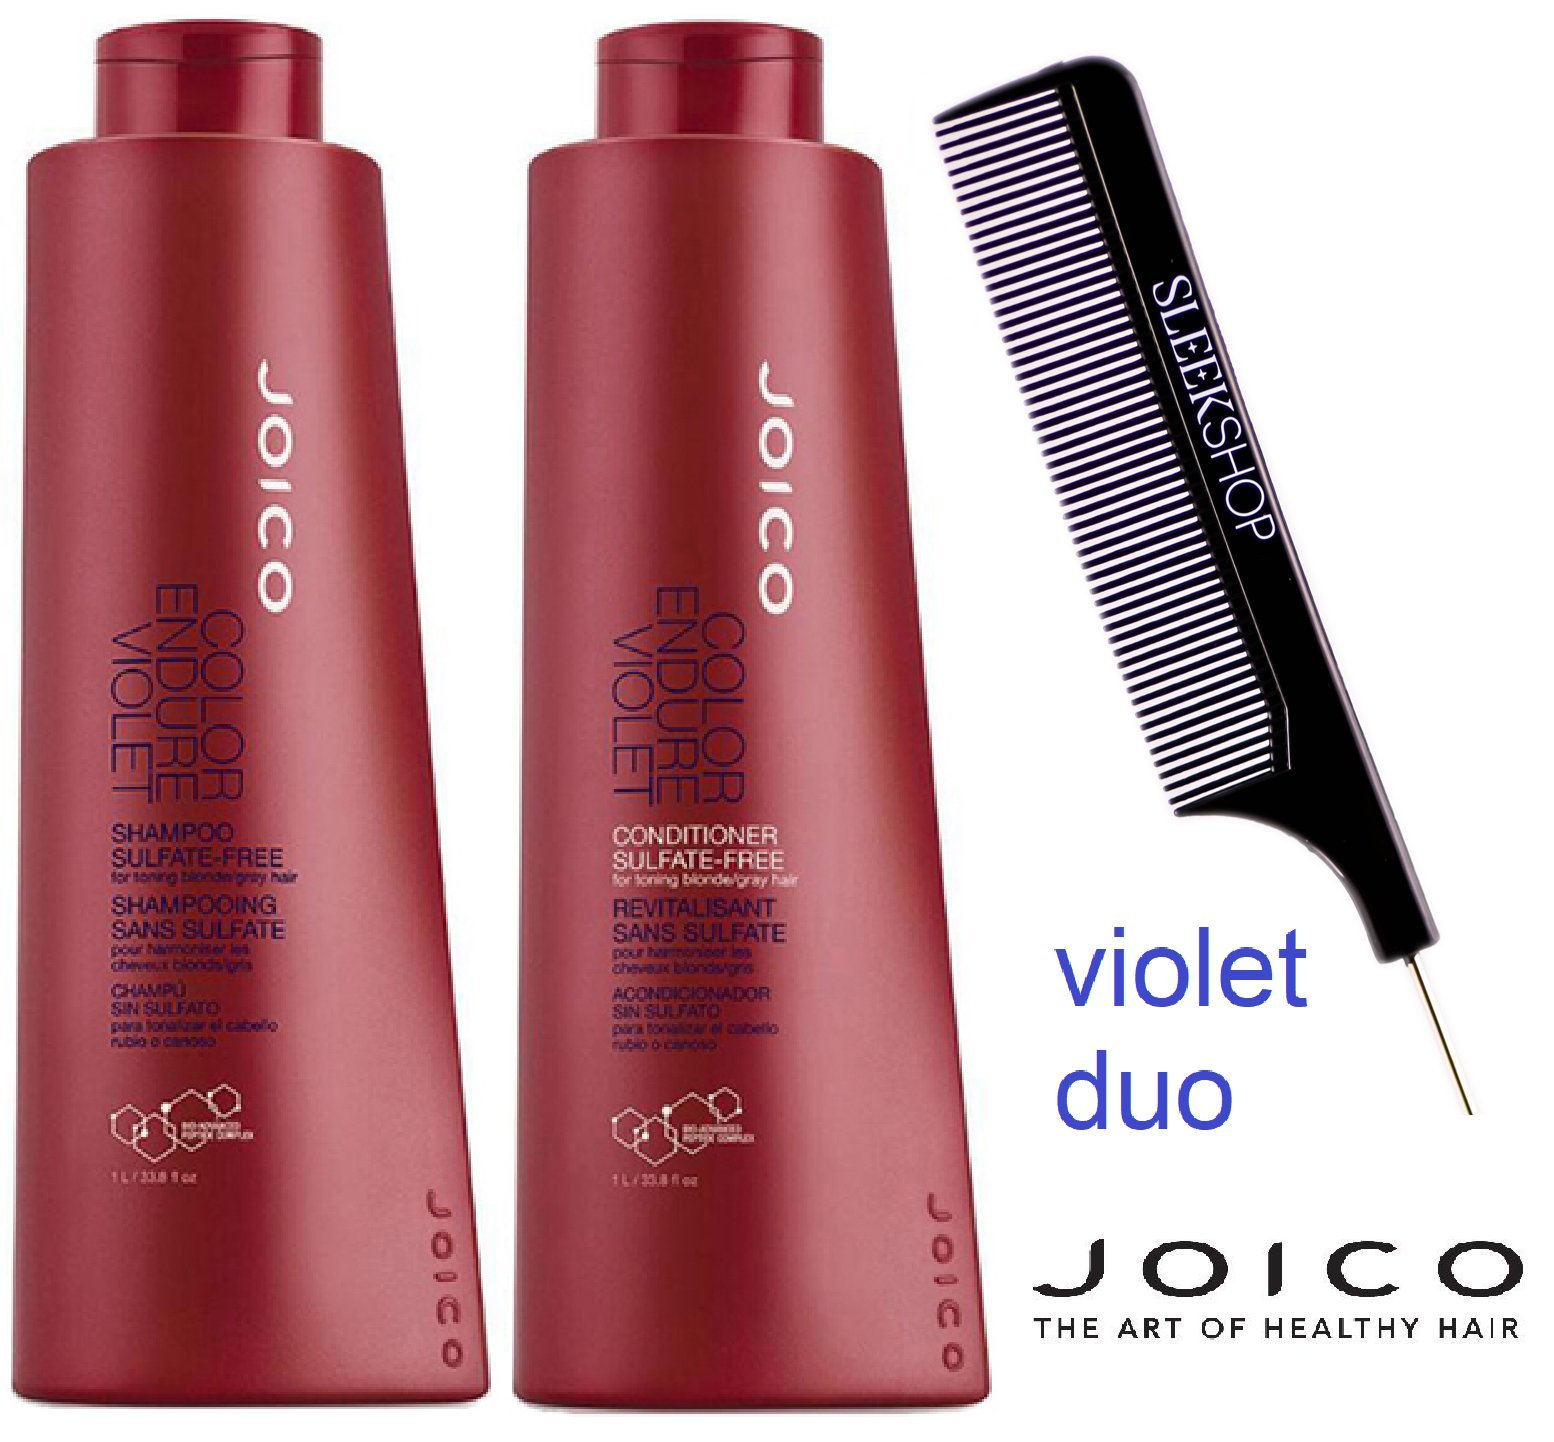 Joico Color Endure VIOLET Shampoo & Conditoner DUO Set for toning blonde or gray hair (with Sleek Steel Pin Tail Comb) (33 oz / 1000 ml - Large Liter DUO Kit) by Joico ColorEndure